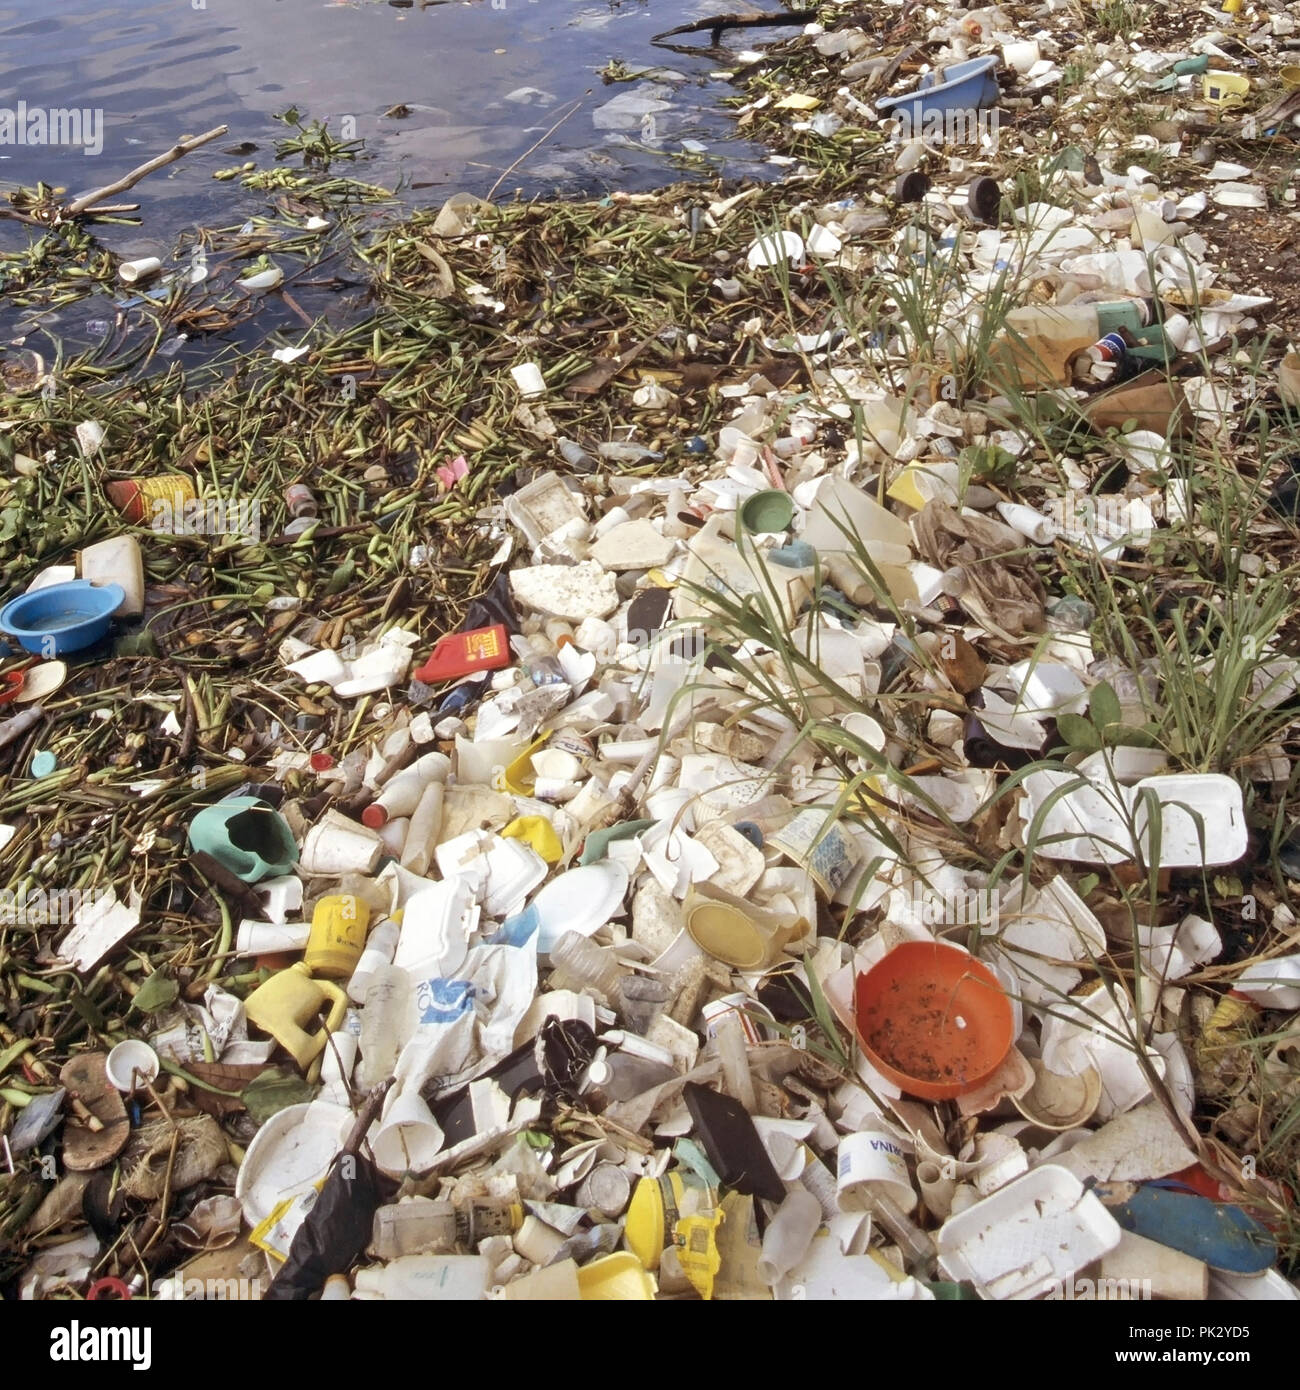 Sea pollution selection of discarded floating plastic packaging waste debris litter garbage junk washed up shoreline Dominican Republic Caribbean Sea - Stock Image